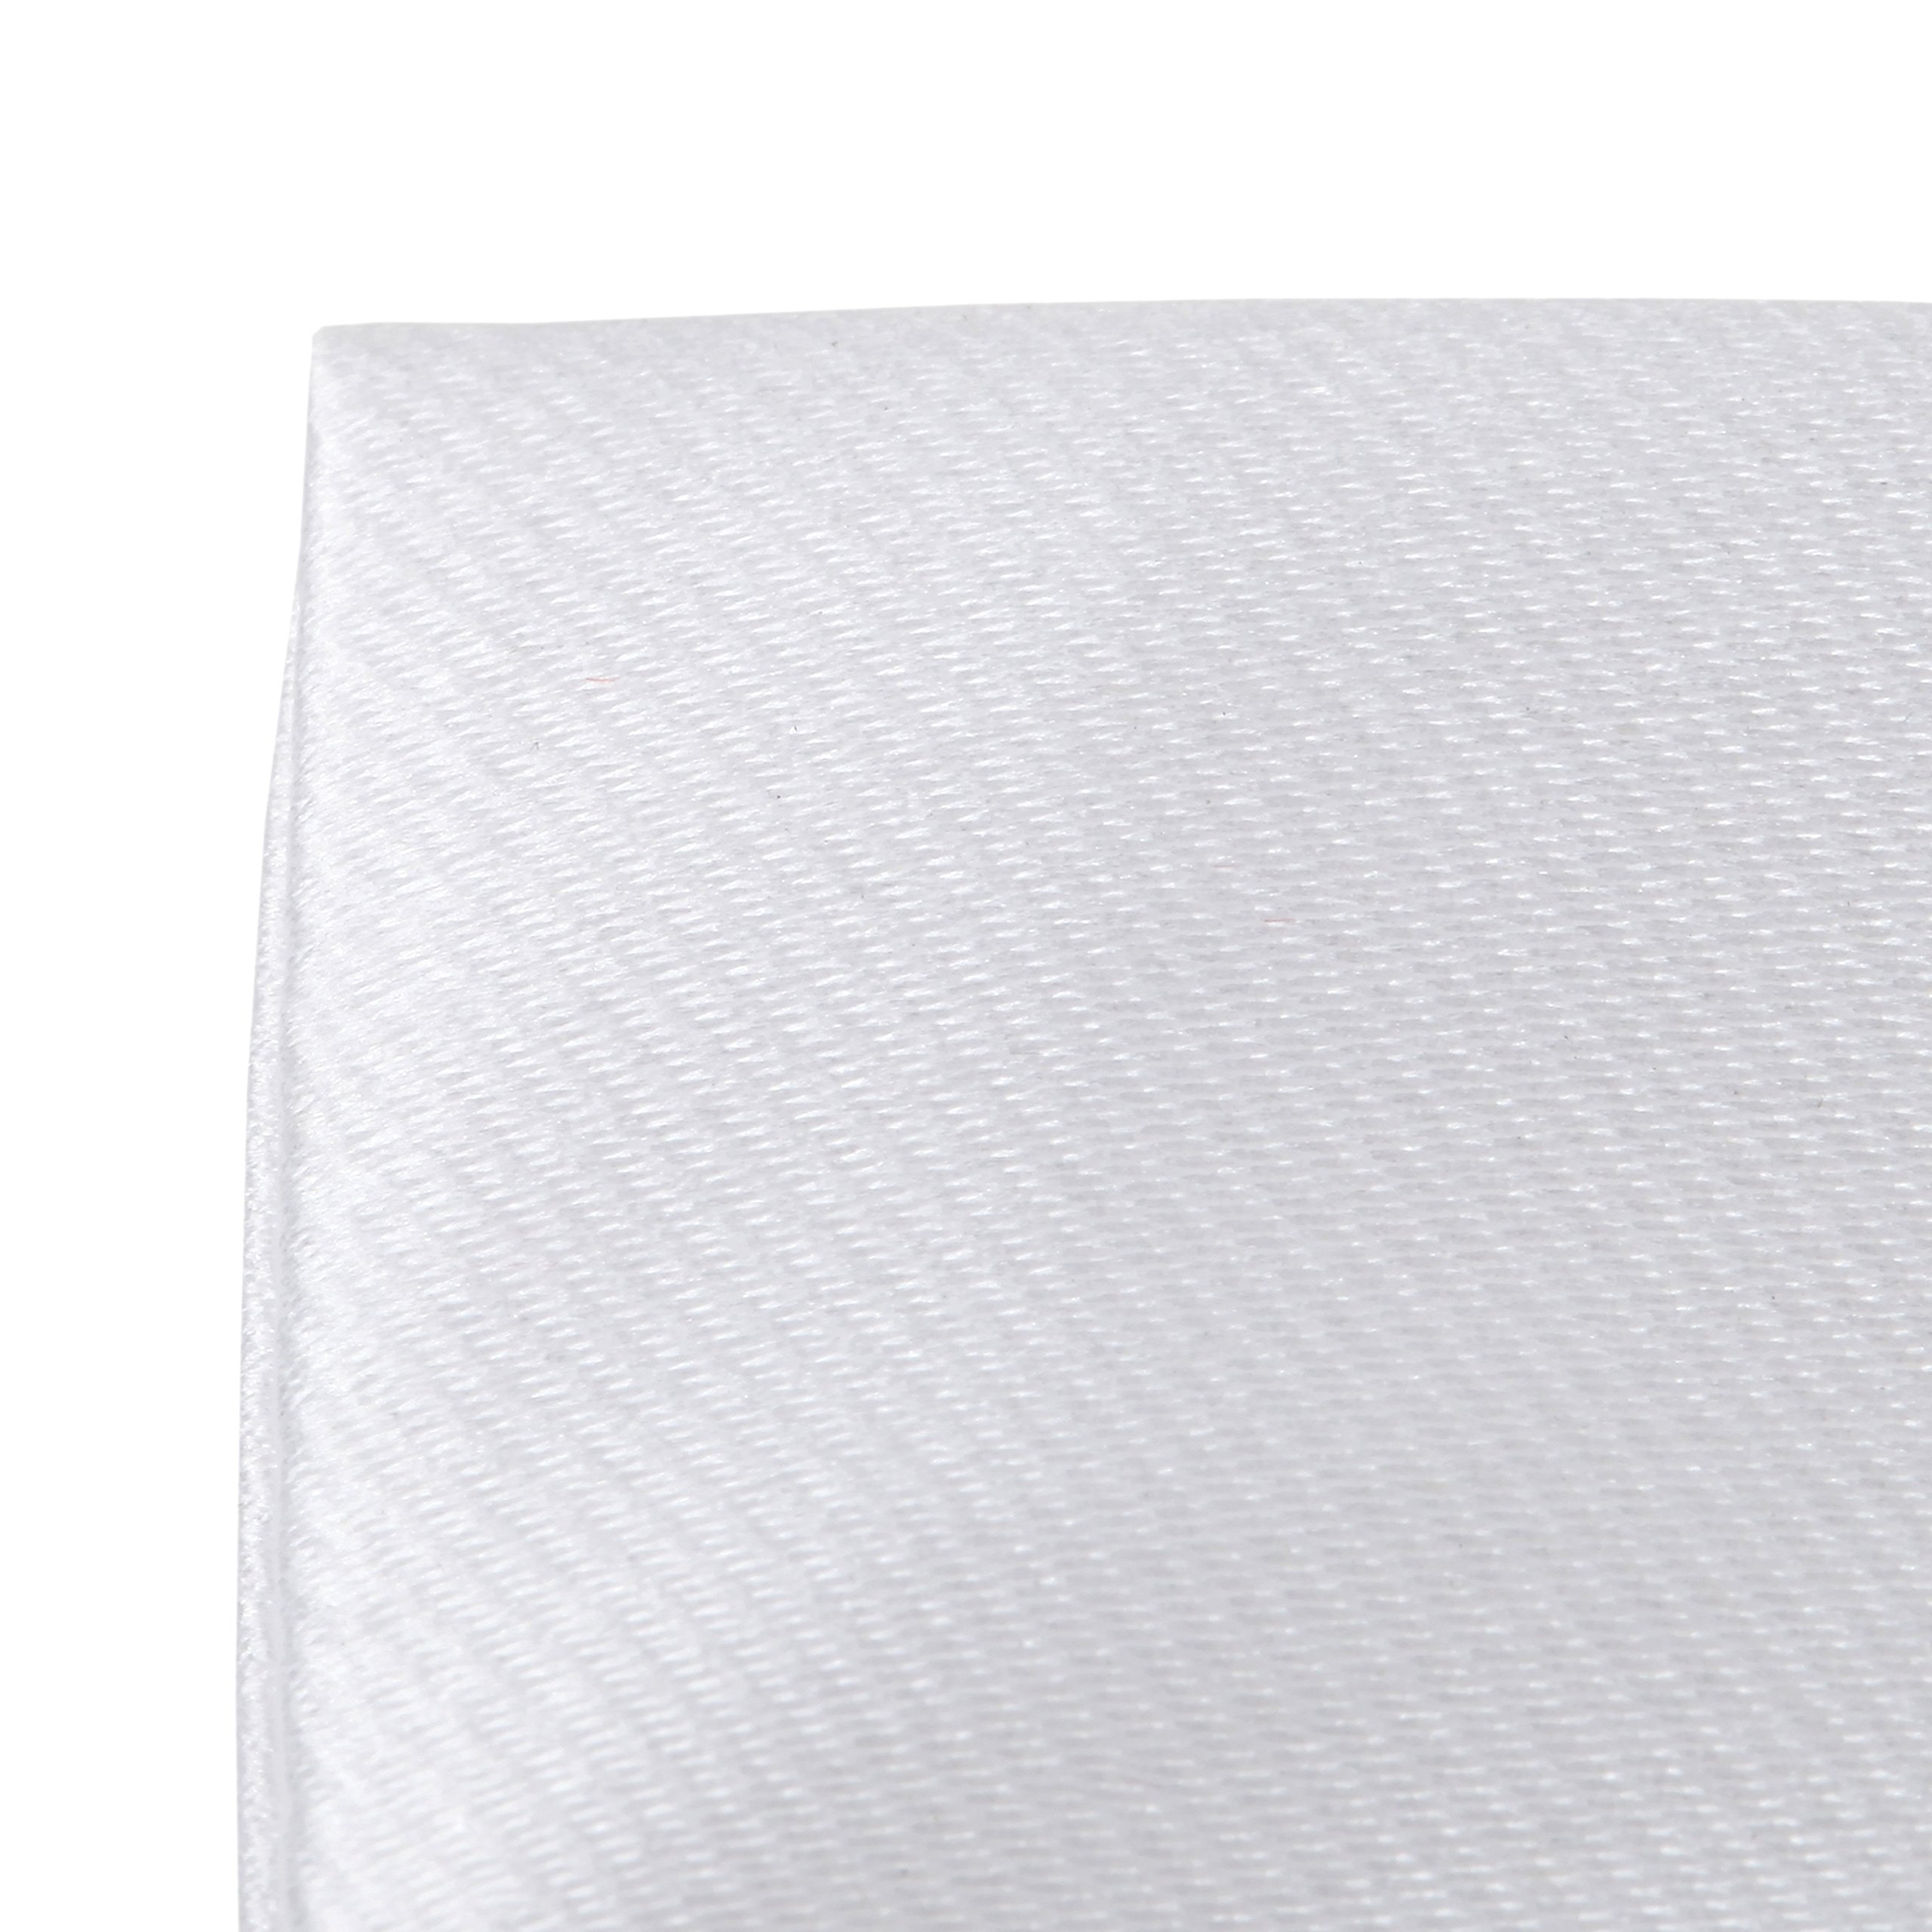 3-Pk White Pocket Square Set Pre Folded, Pesko, Crown and Puff Folds by Puentes Denver (Image #6)